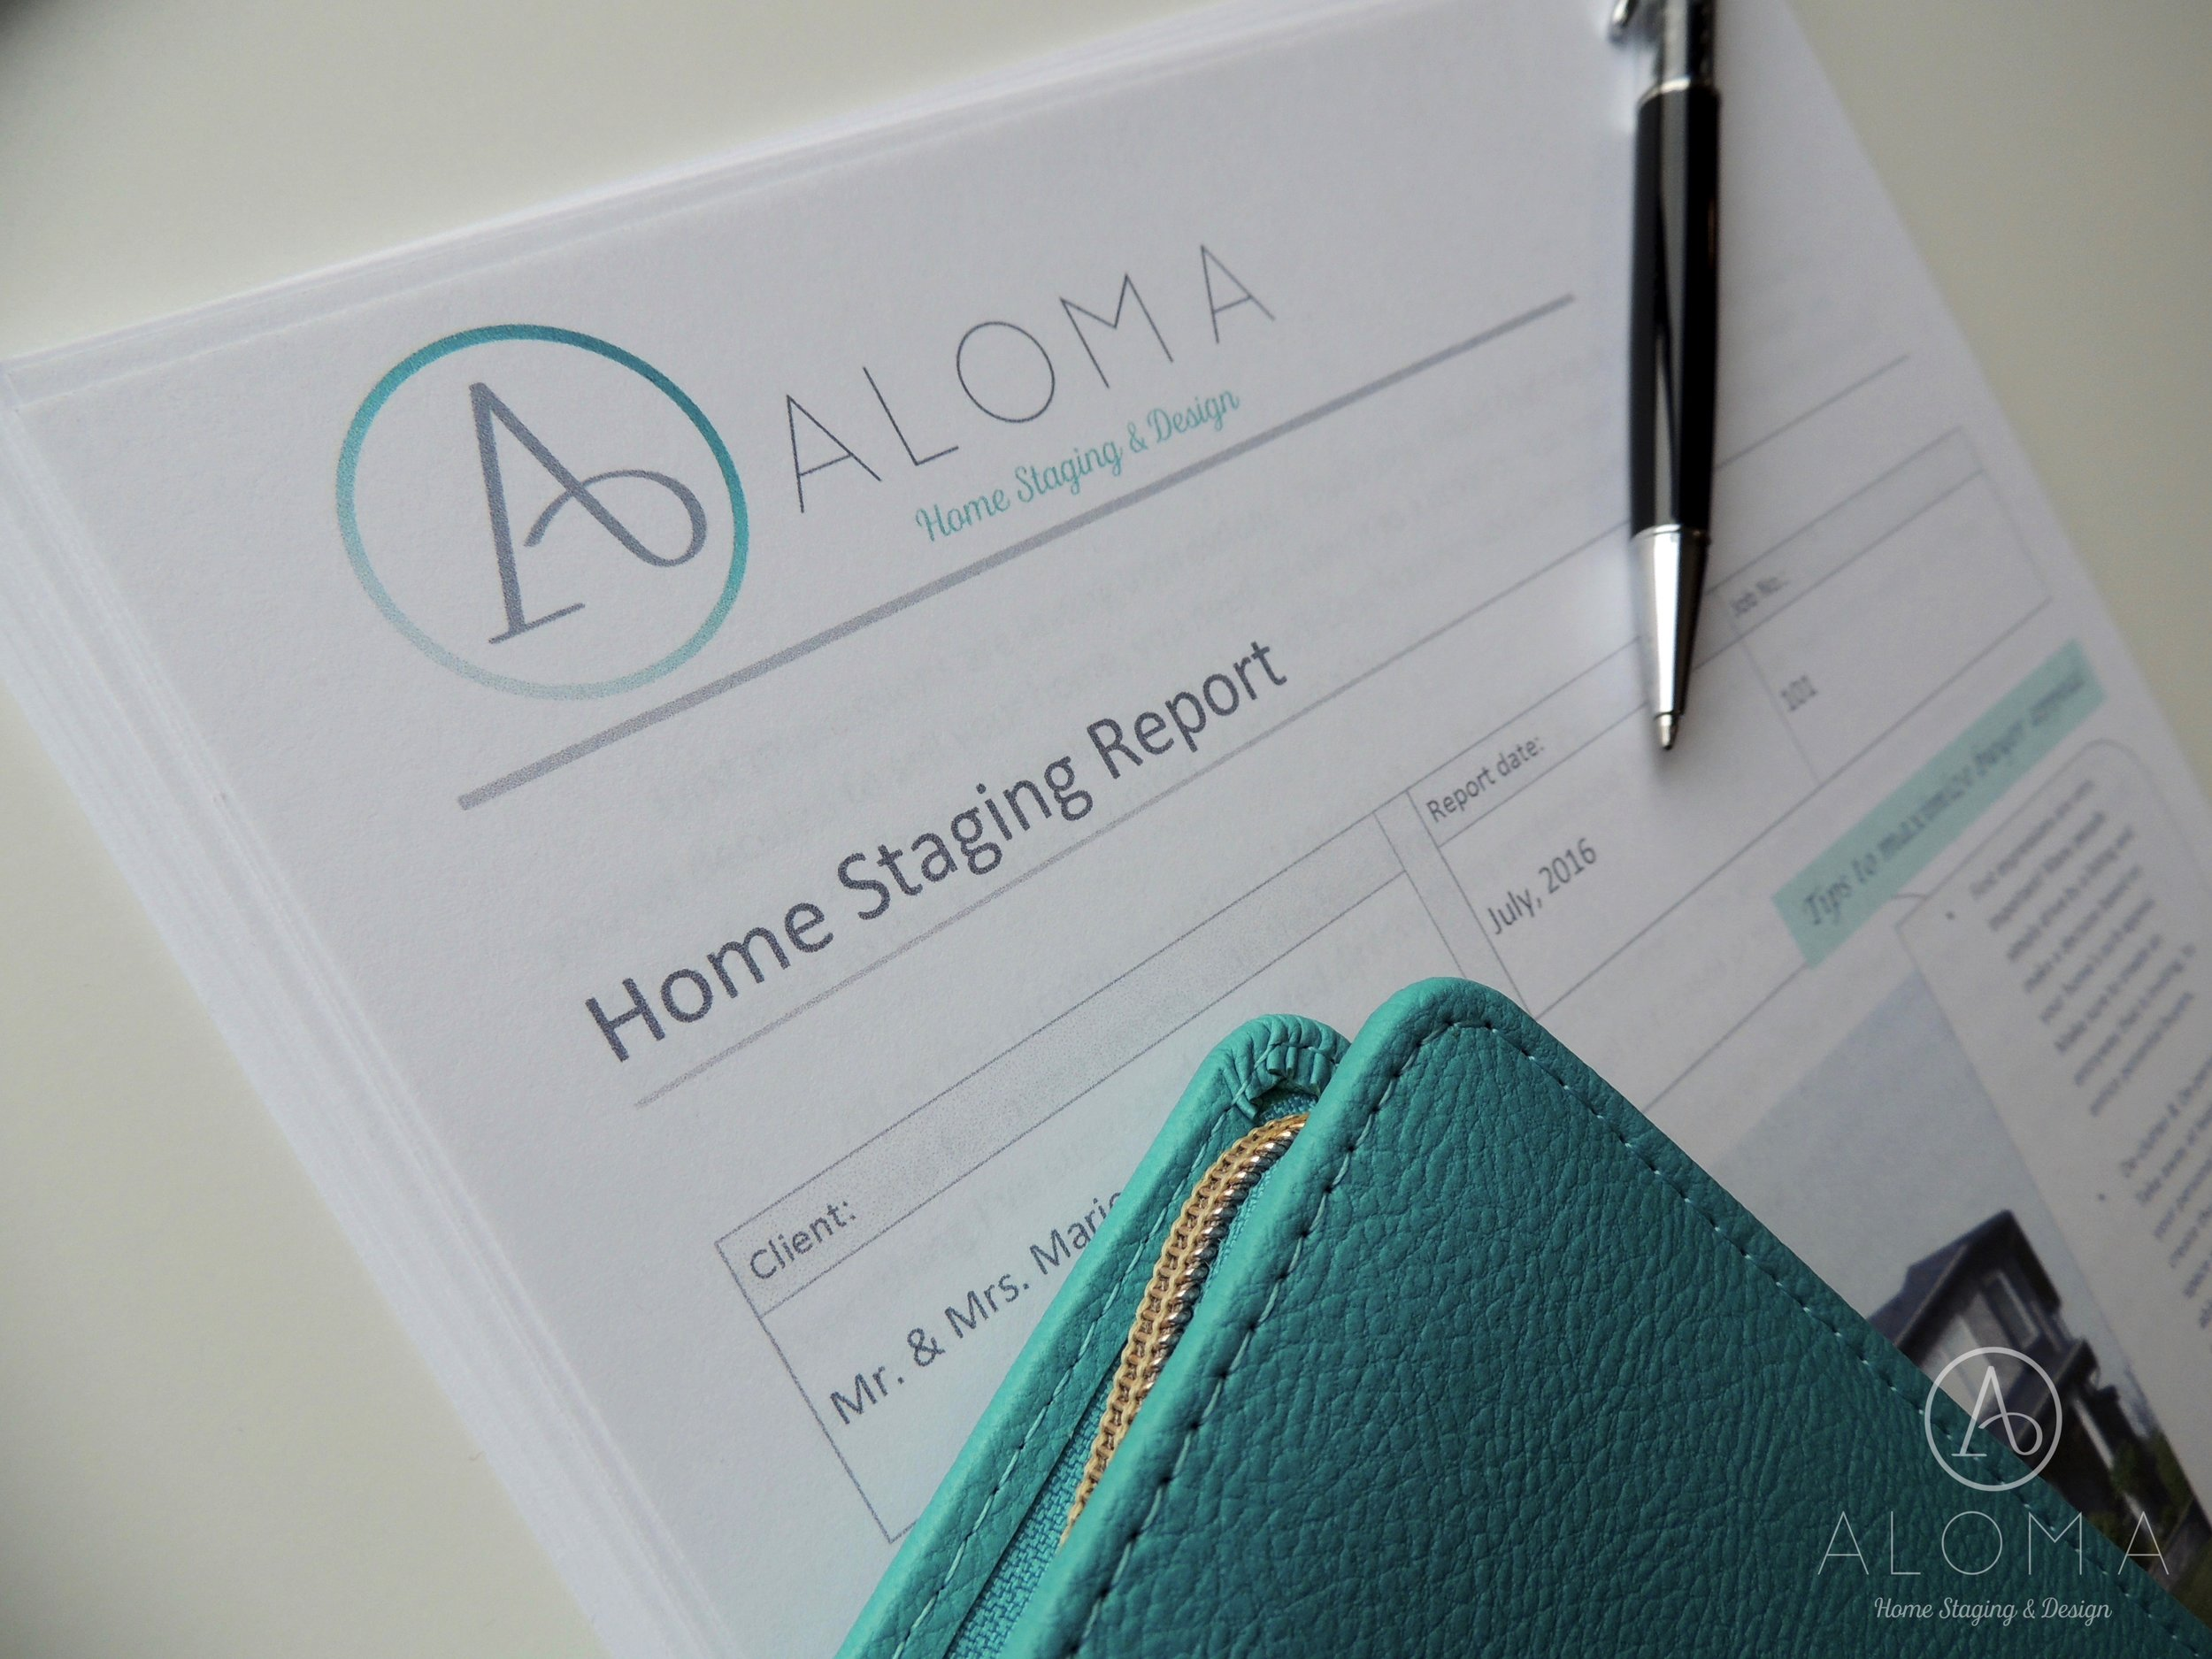 Home Staging Report by Aloma Home Staging & Design